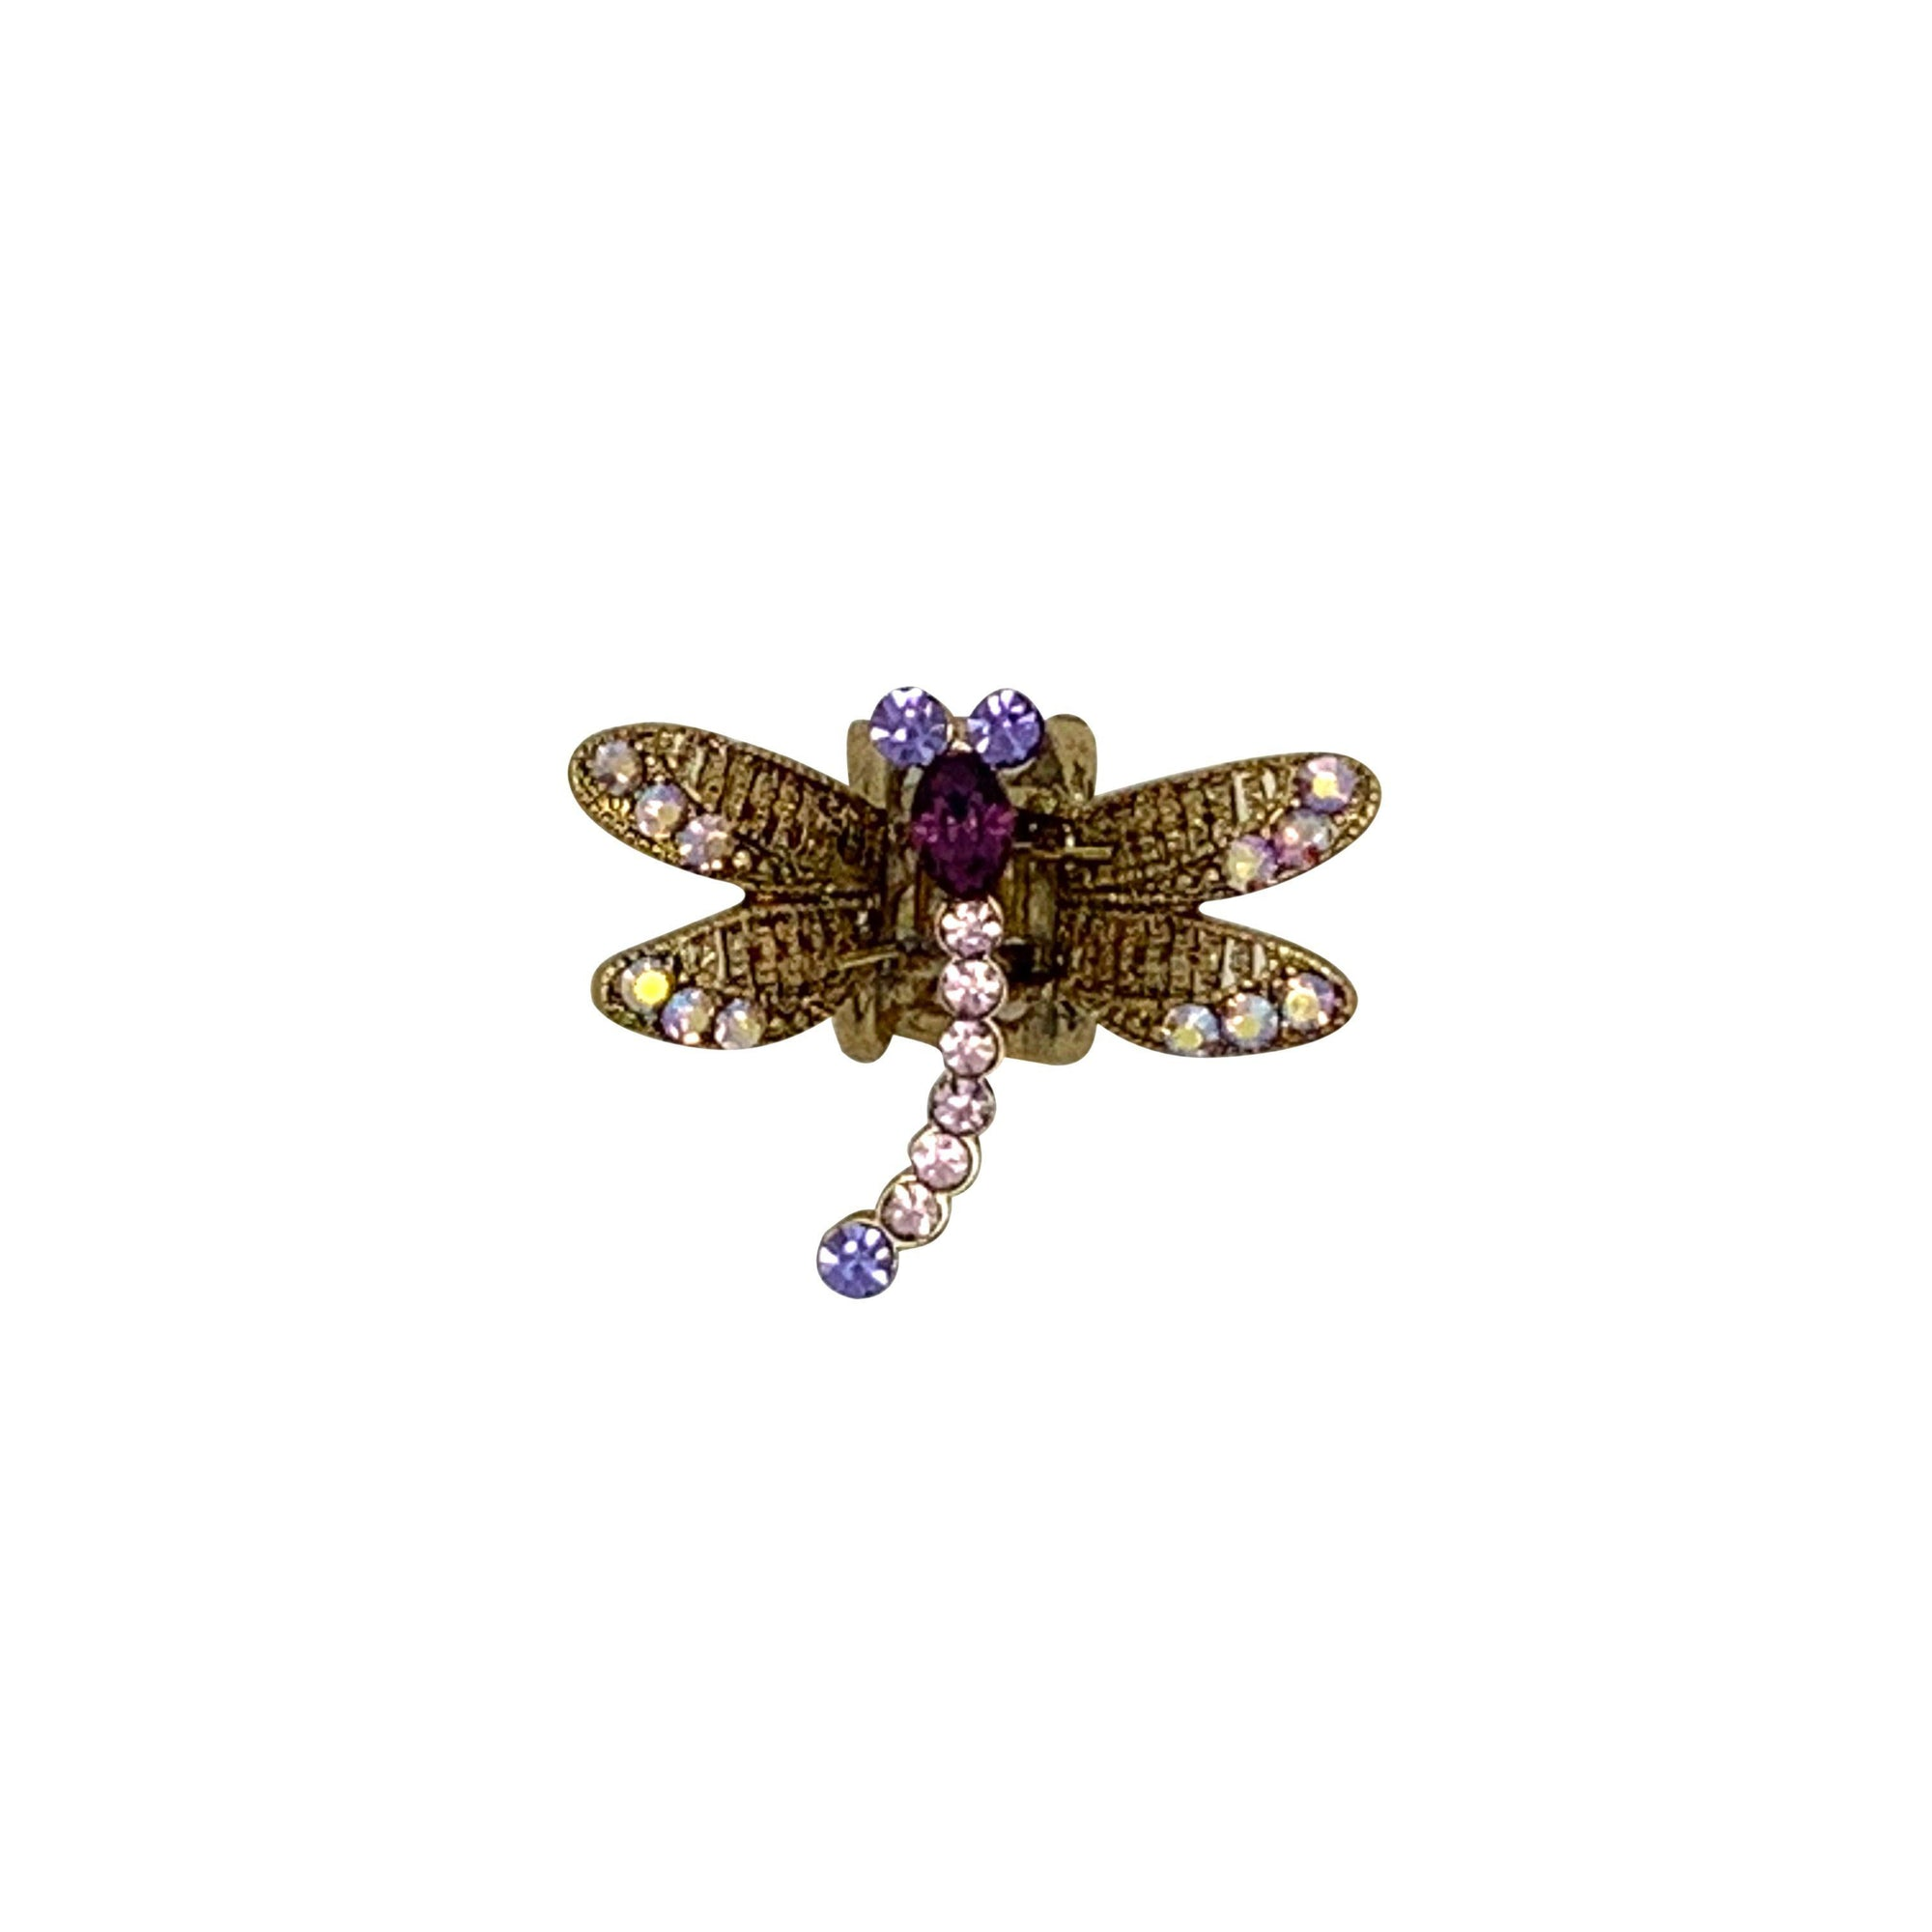 Mini Swarovski Crystal Dragonfly Hairclaw-Hair claws-Swarovski Crystal-Fuchsia Crystal-Tegen Accessories Pink